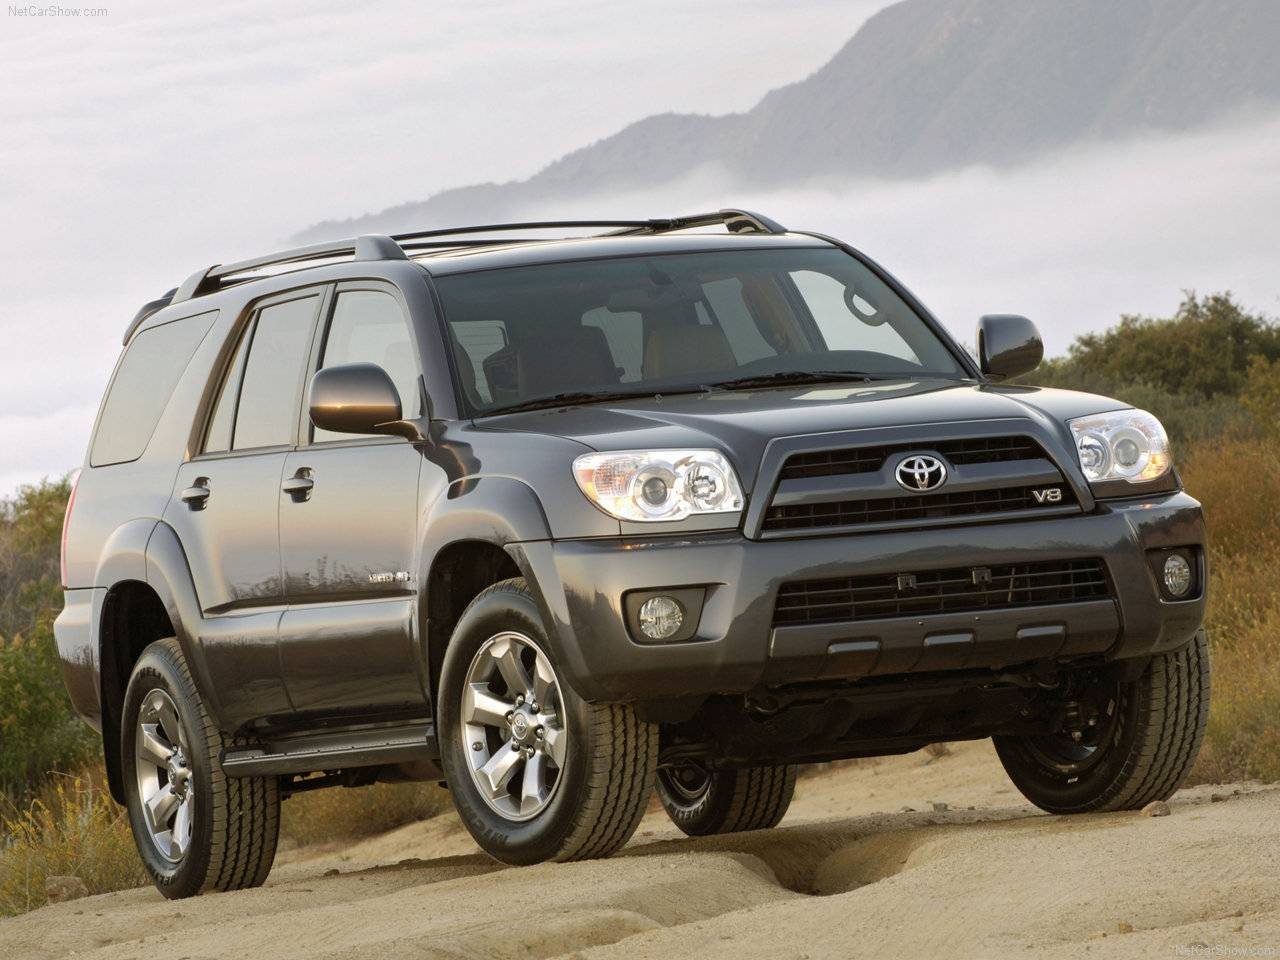 2009 Toyota 4runner Toyota Autos Spain